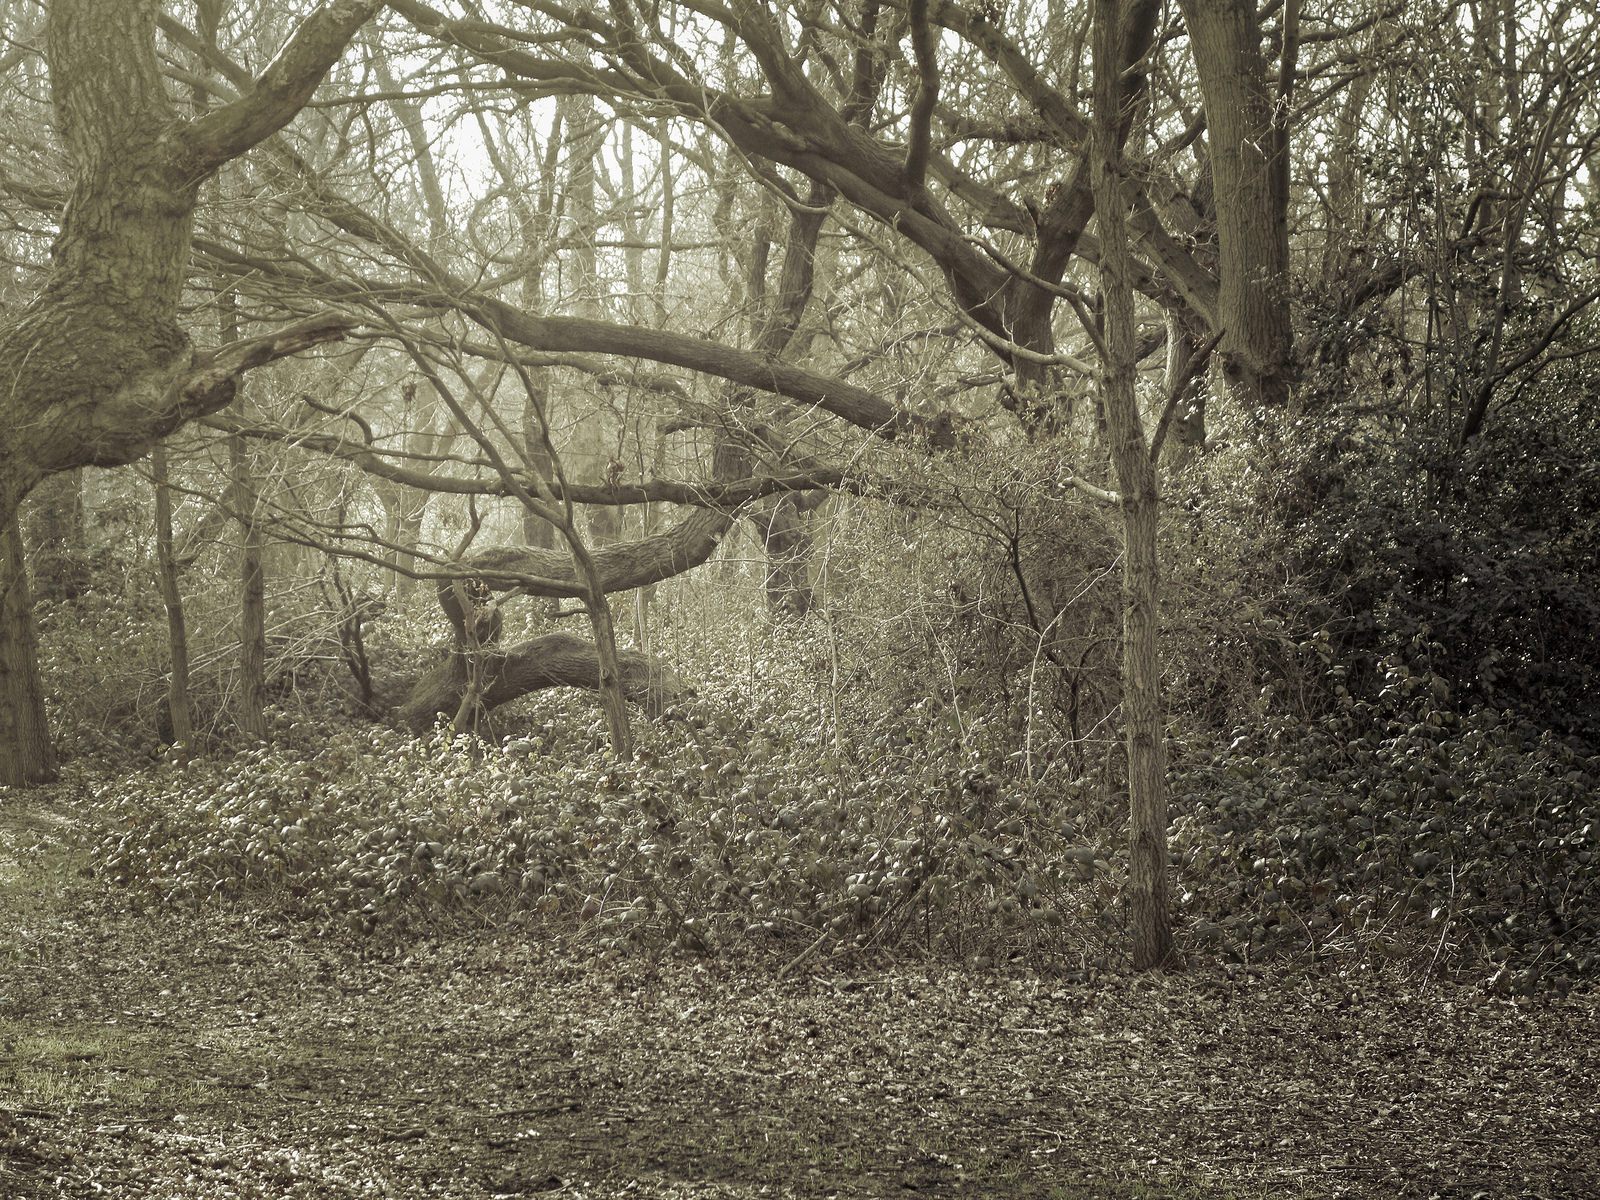 Epping Forest, north east of London